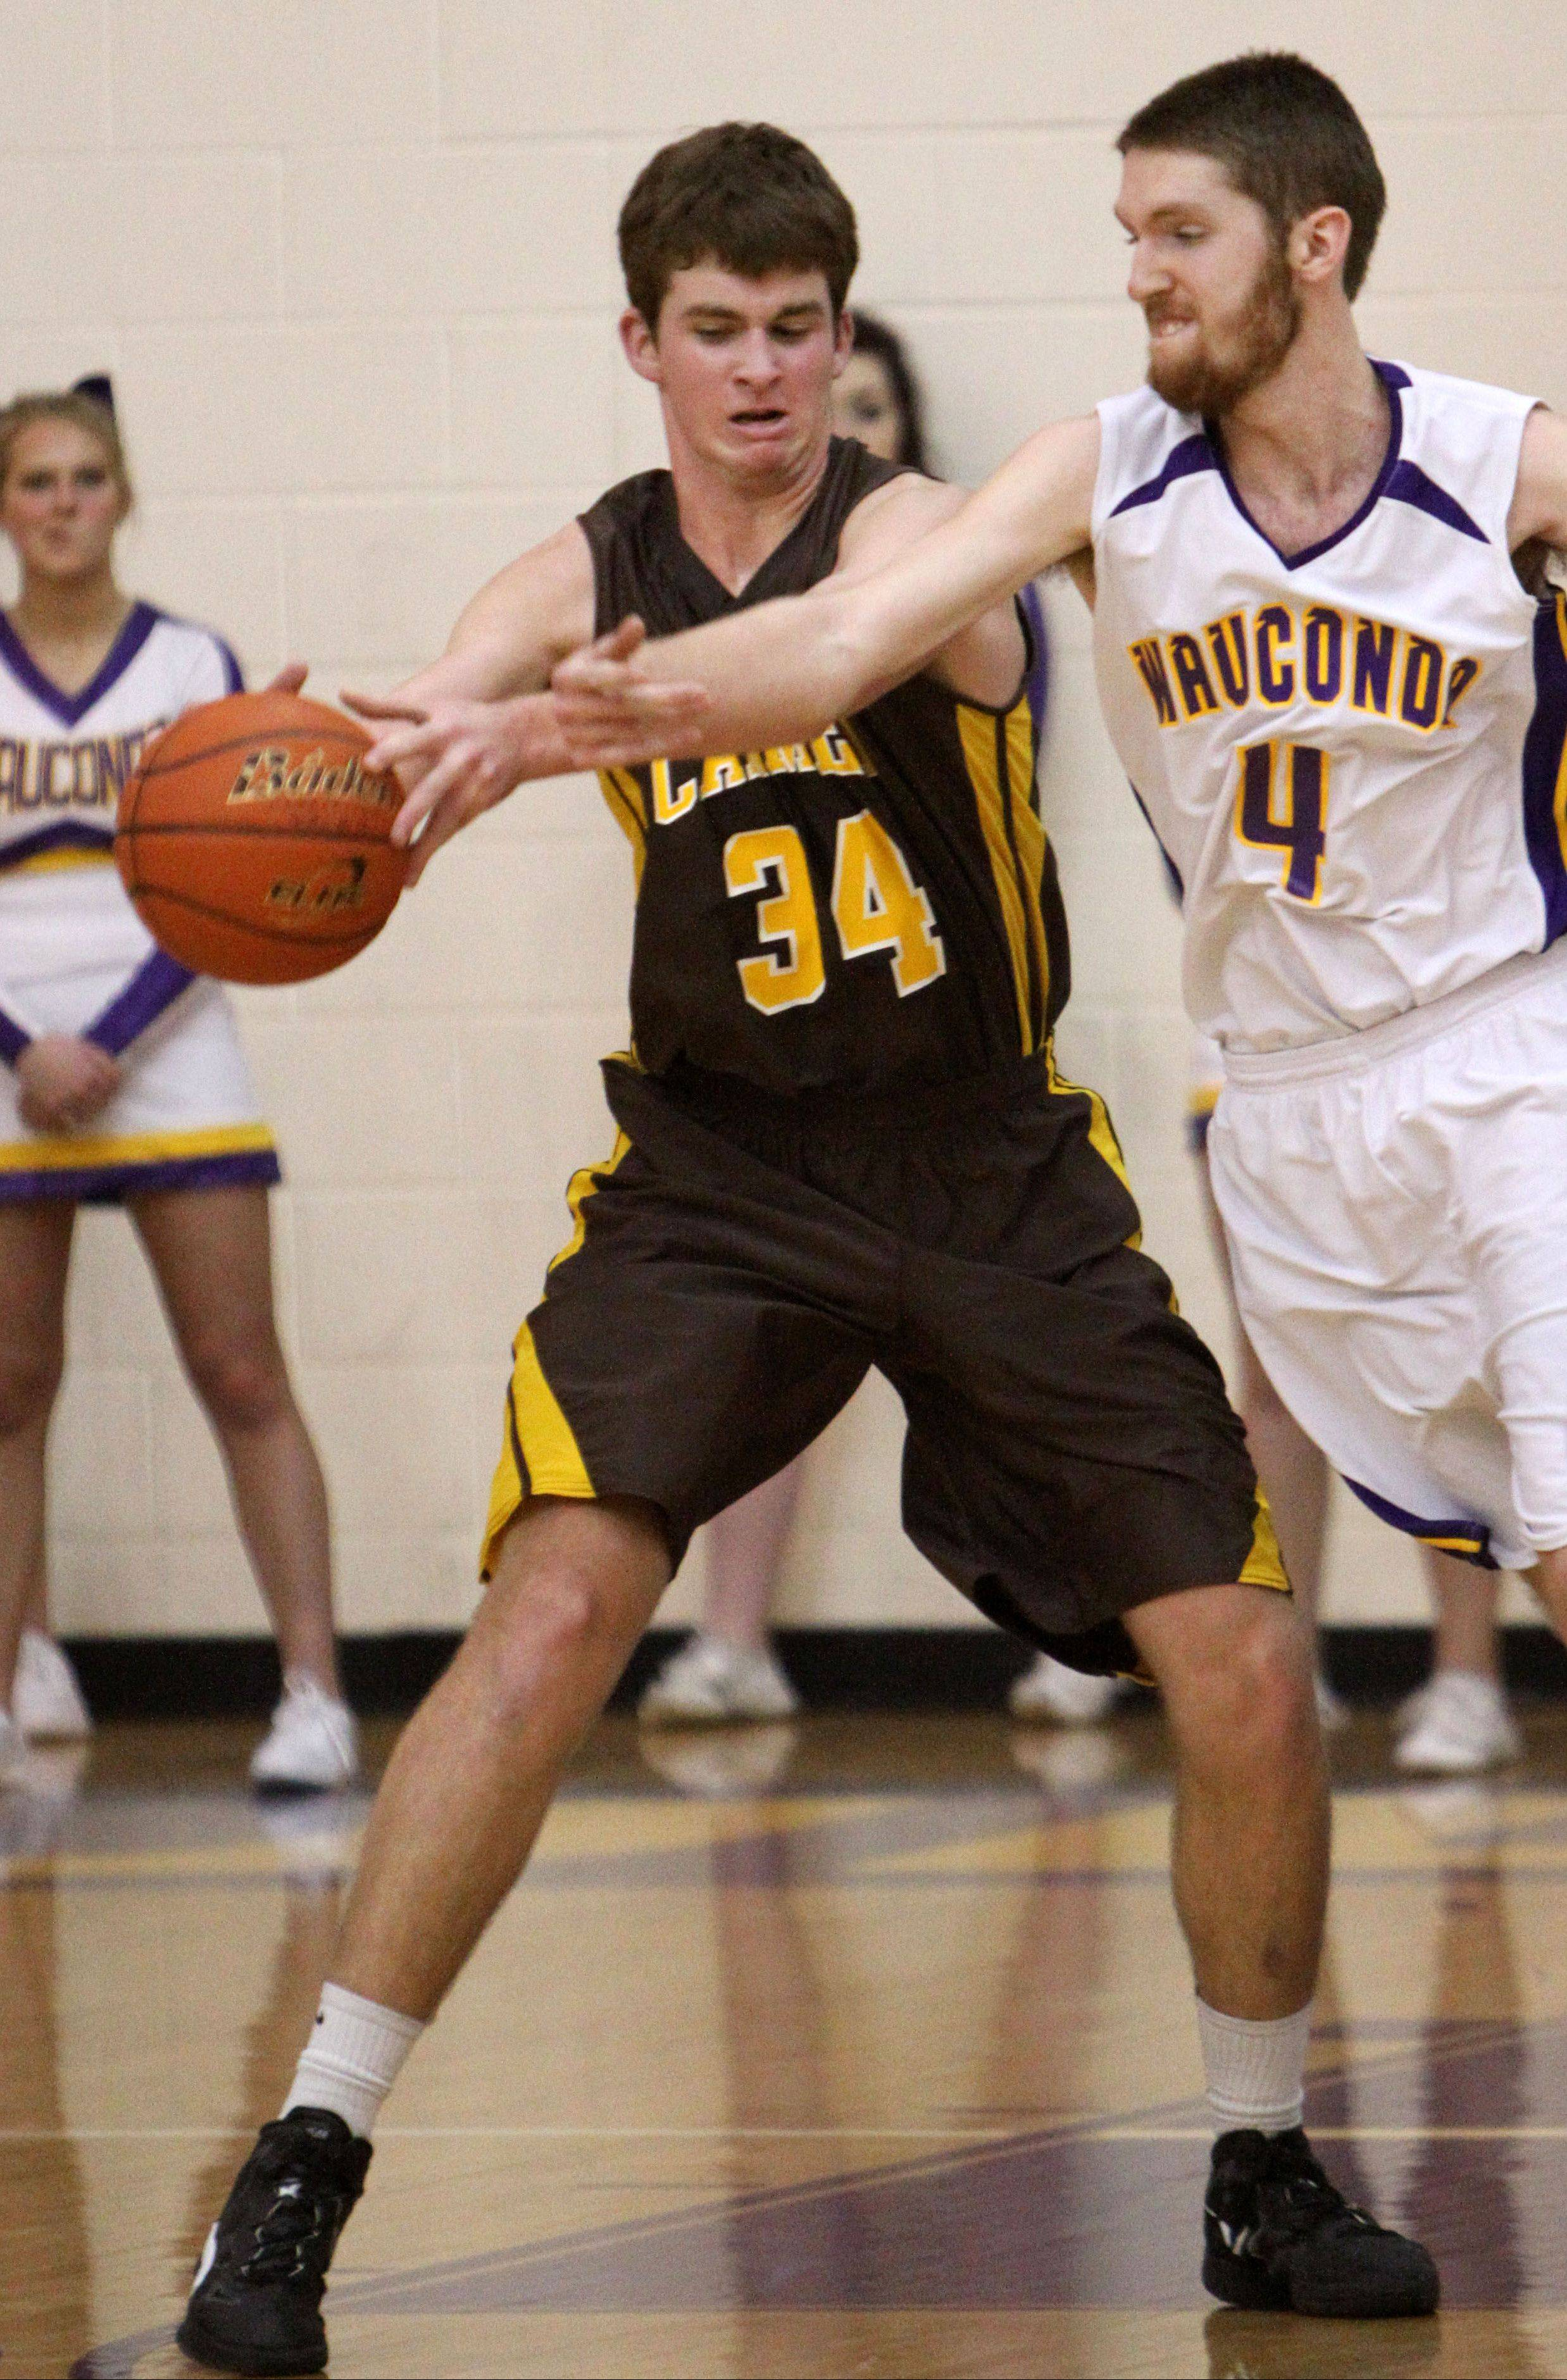 Wauconda's Ricky Sidlowski, right, tries to steal the ball from Carmel's Cullen Barr on Wednesday night in Wauconda.